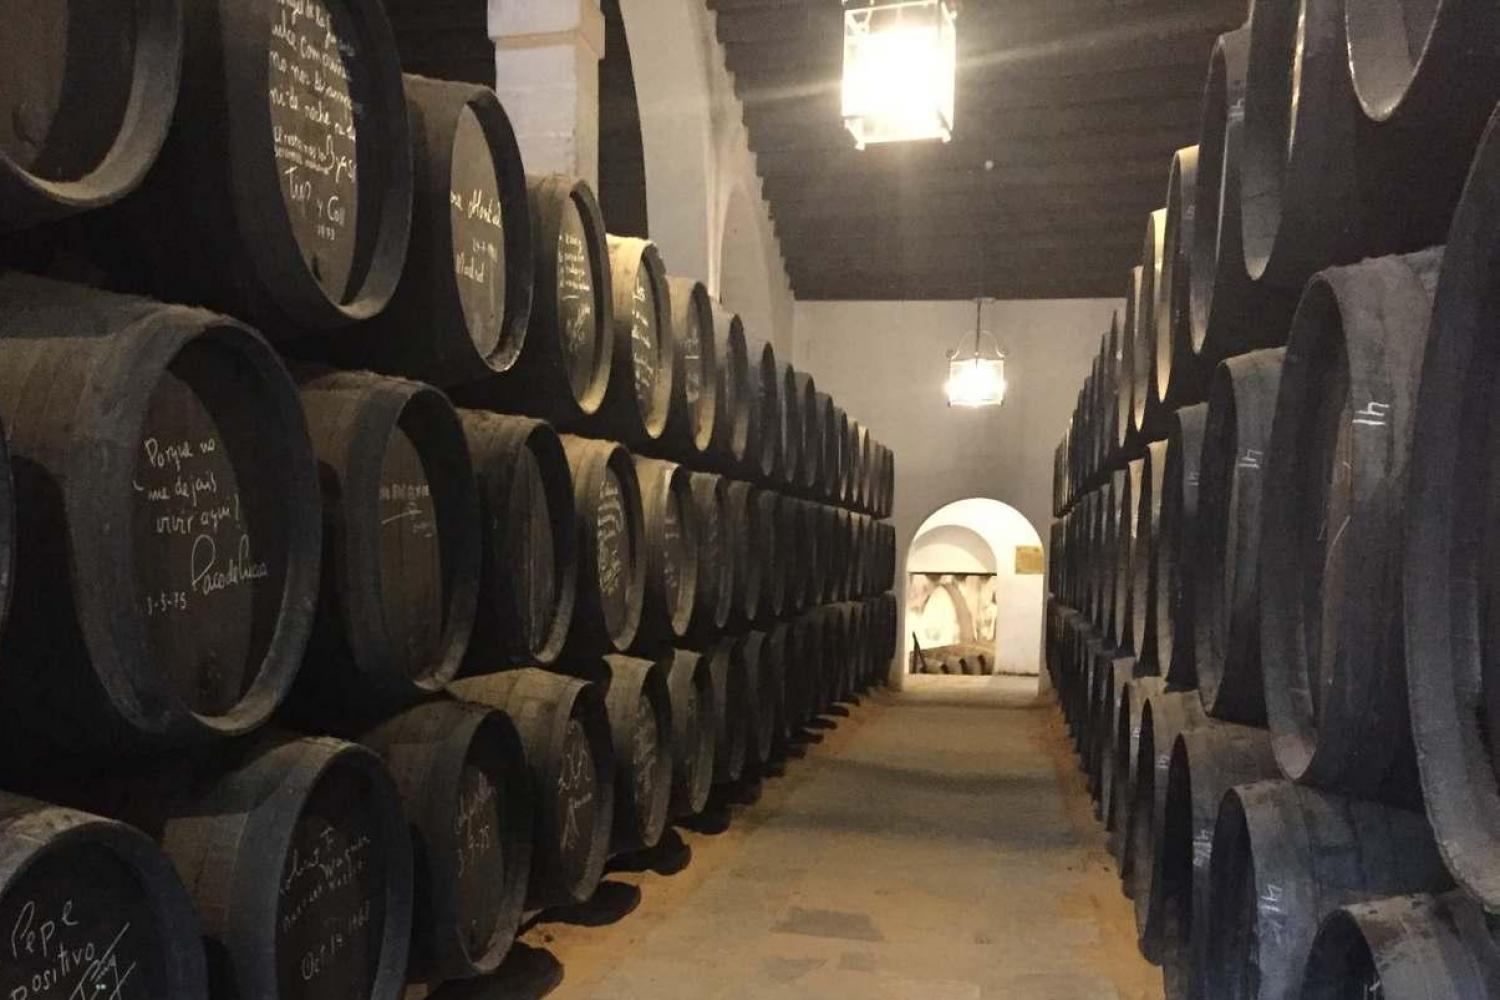 Visit Sherry wineries in Jerez